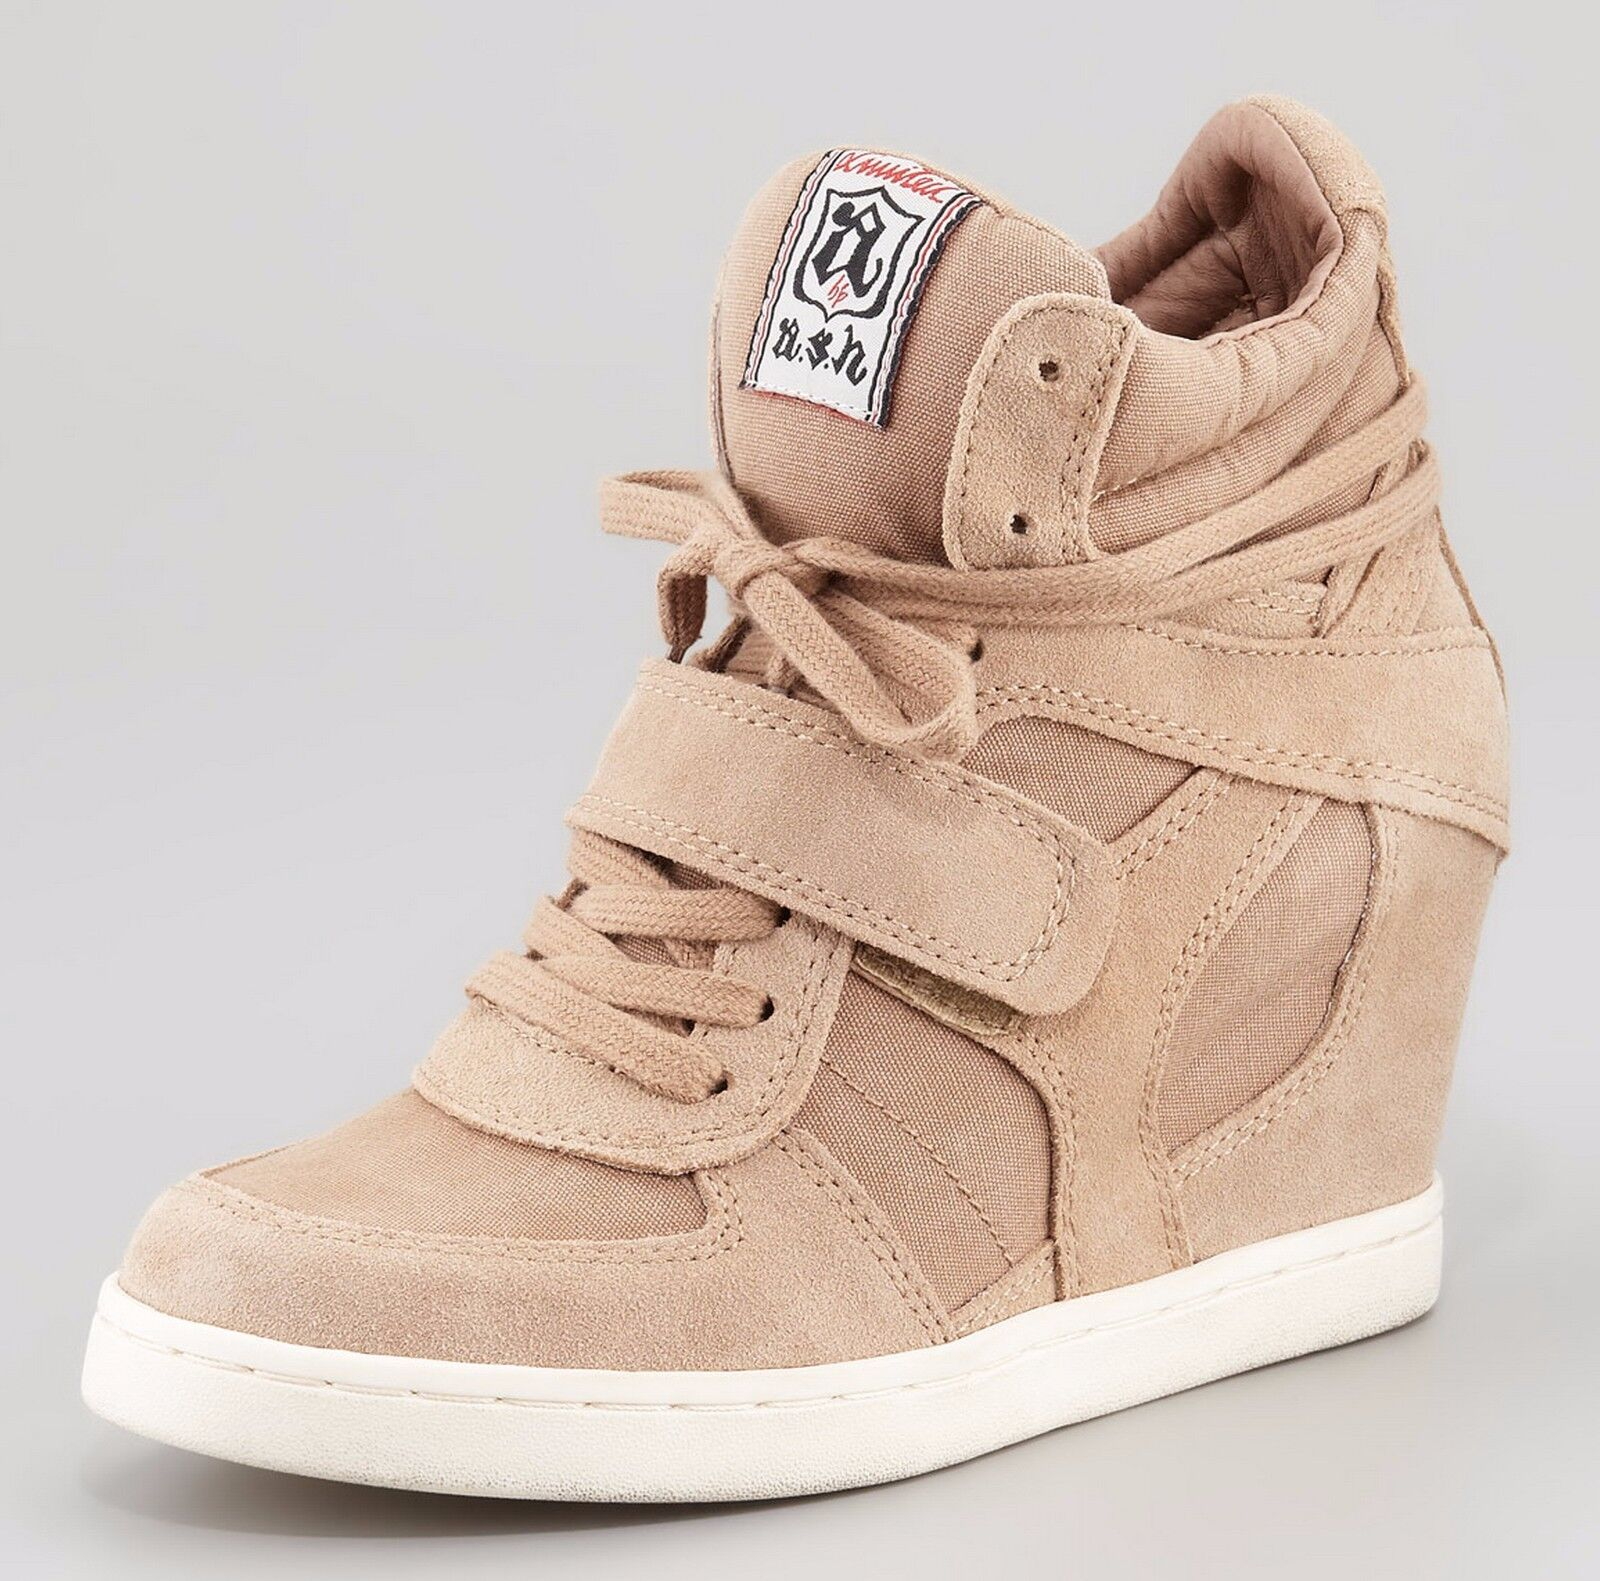 **CLEARANCE** NIB Ash COOL Suede Canvas Wedge Sneakers Shoes, CHAMOIS,